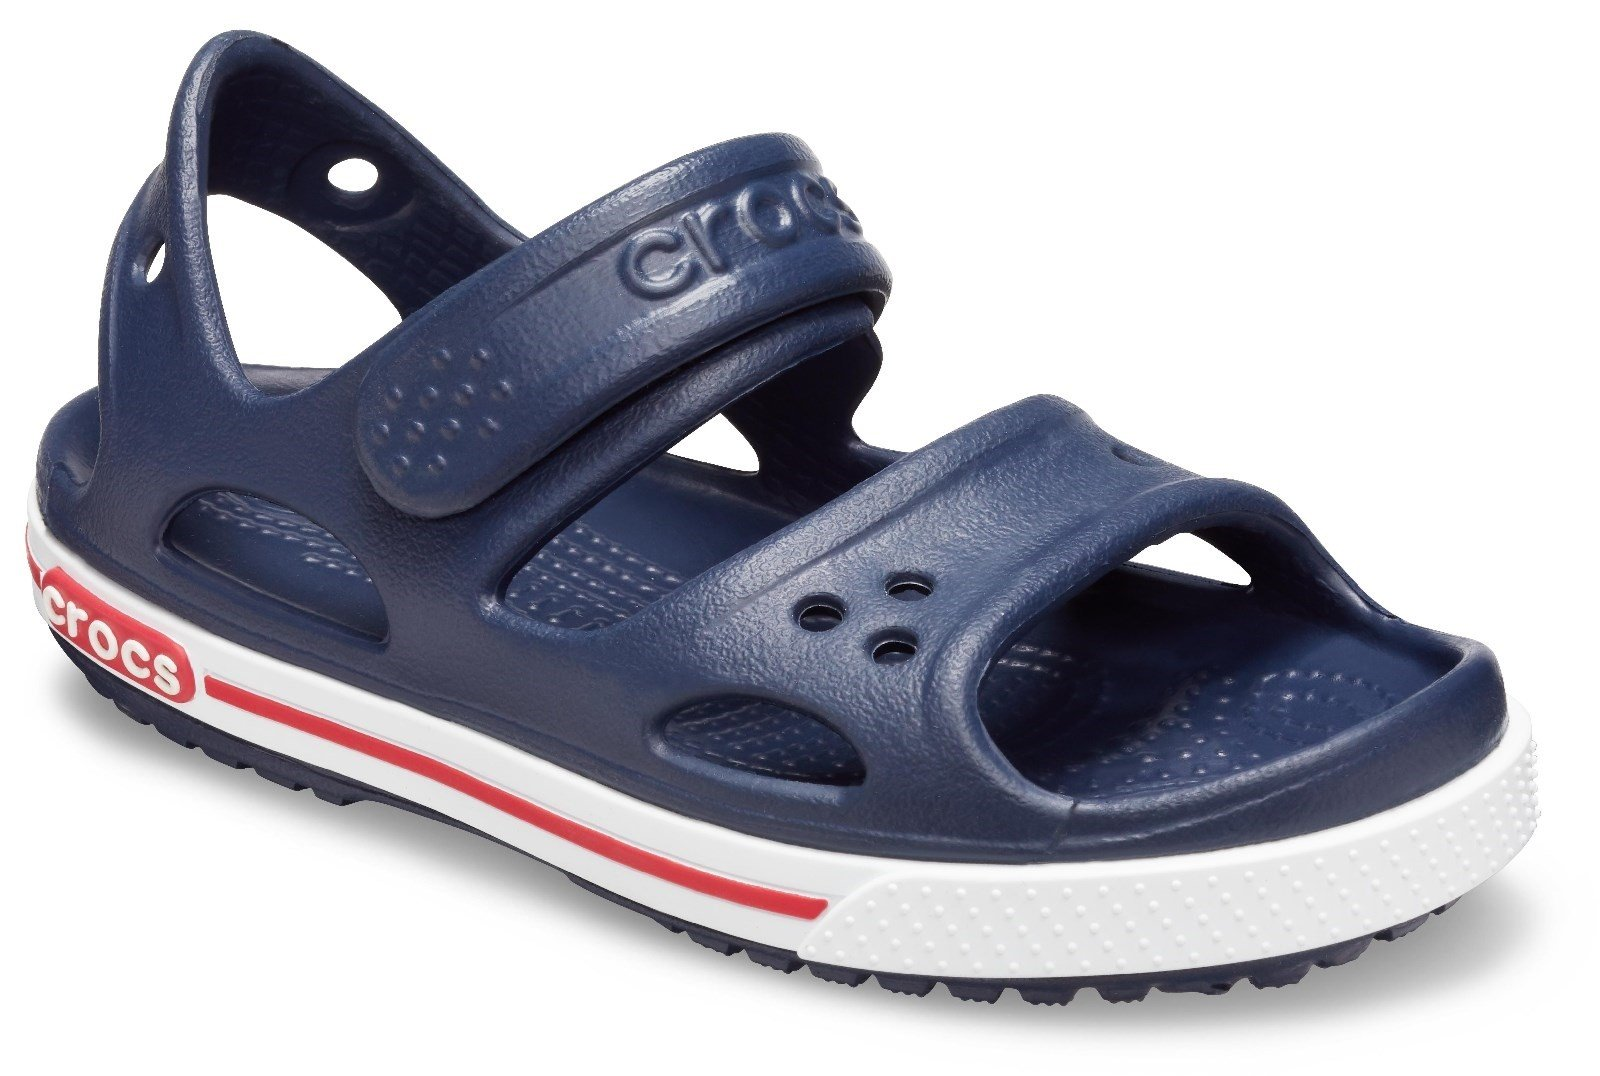 Crocs Kid's Crocband ll Touch Fastening Sandal Various Colours 28788 - Navy/White 4